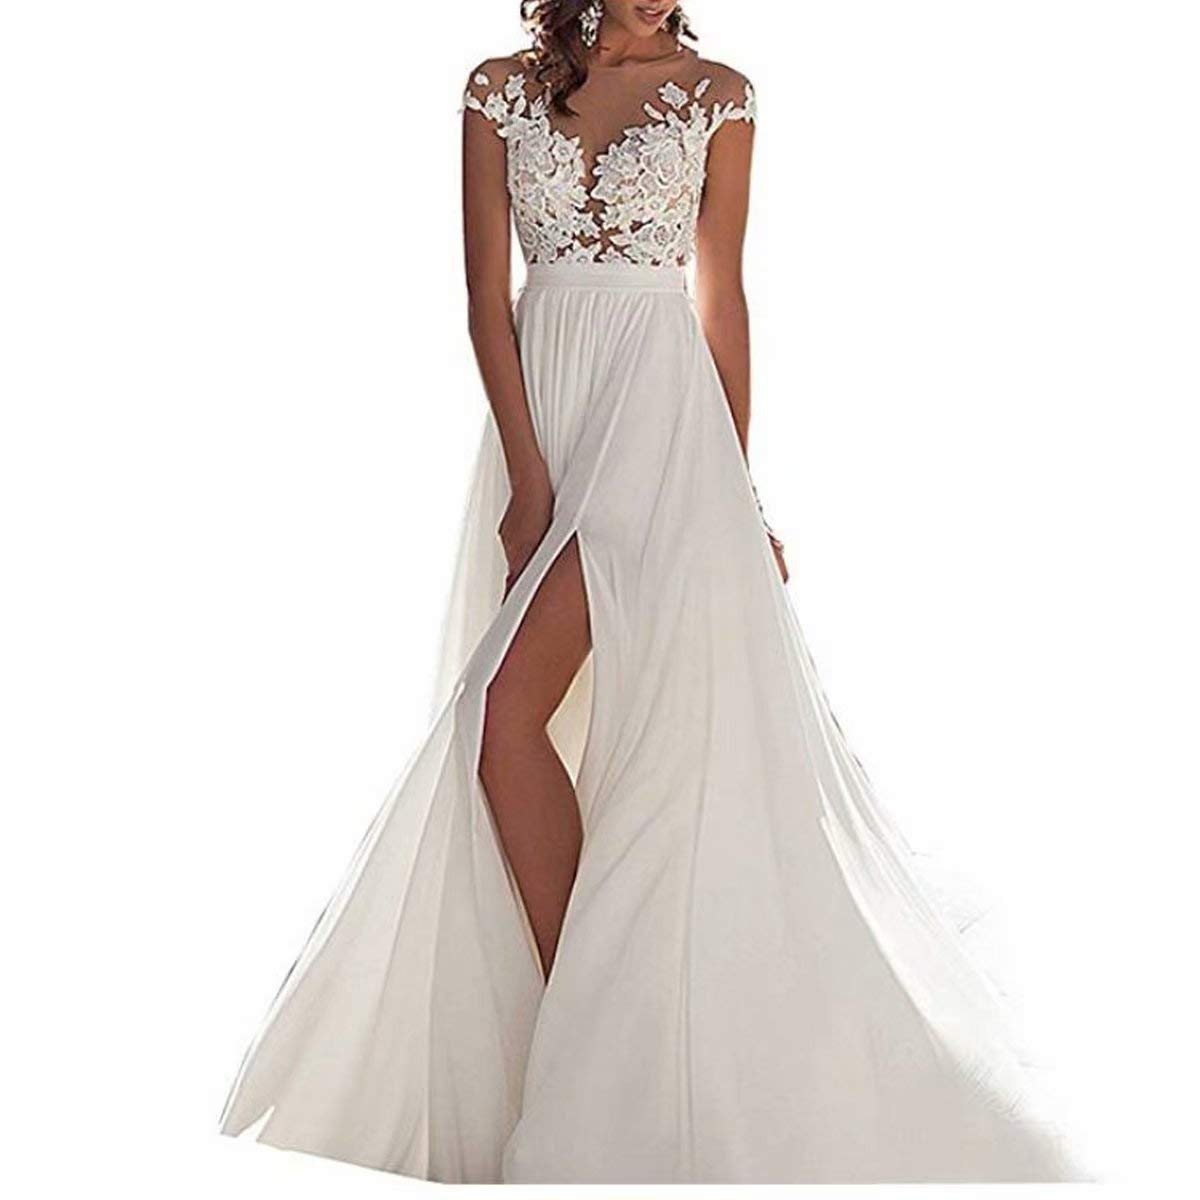 a4f82888ba8 Chady Chiffon Beach Wedding Dress 2018 Lace Back Long Tail Gowns Bride  Dresses For Weddings At